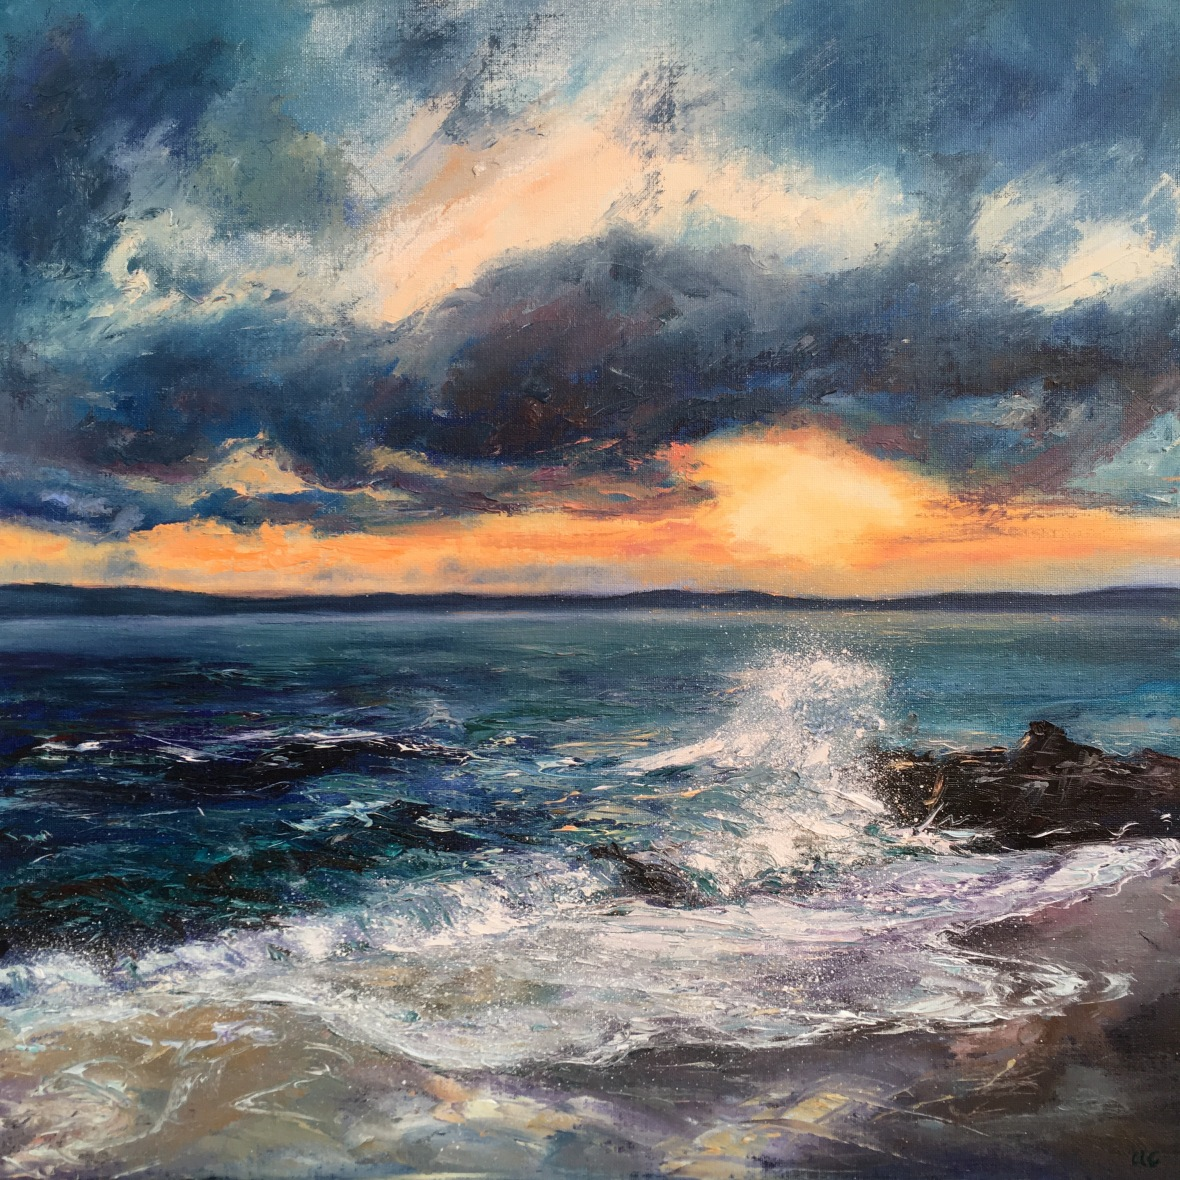 Sunrise Porthgwidden St Ives oil painting by Anna Cumming